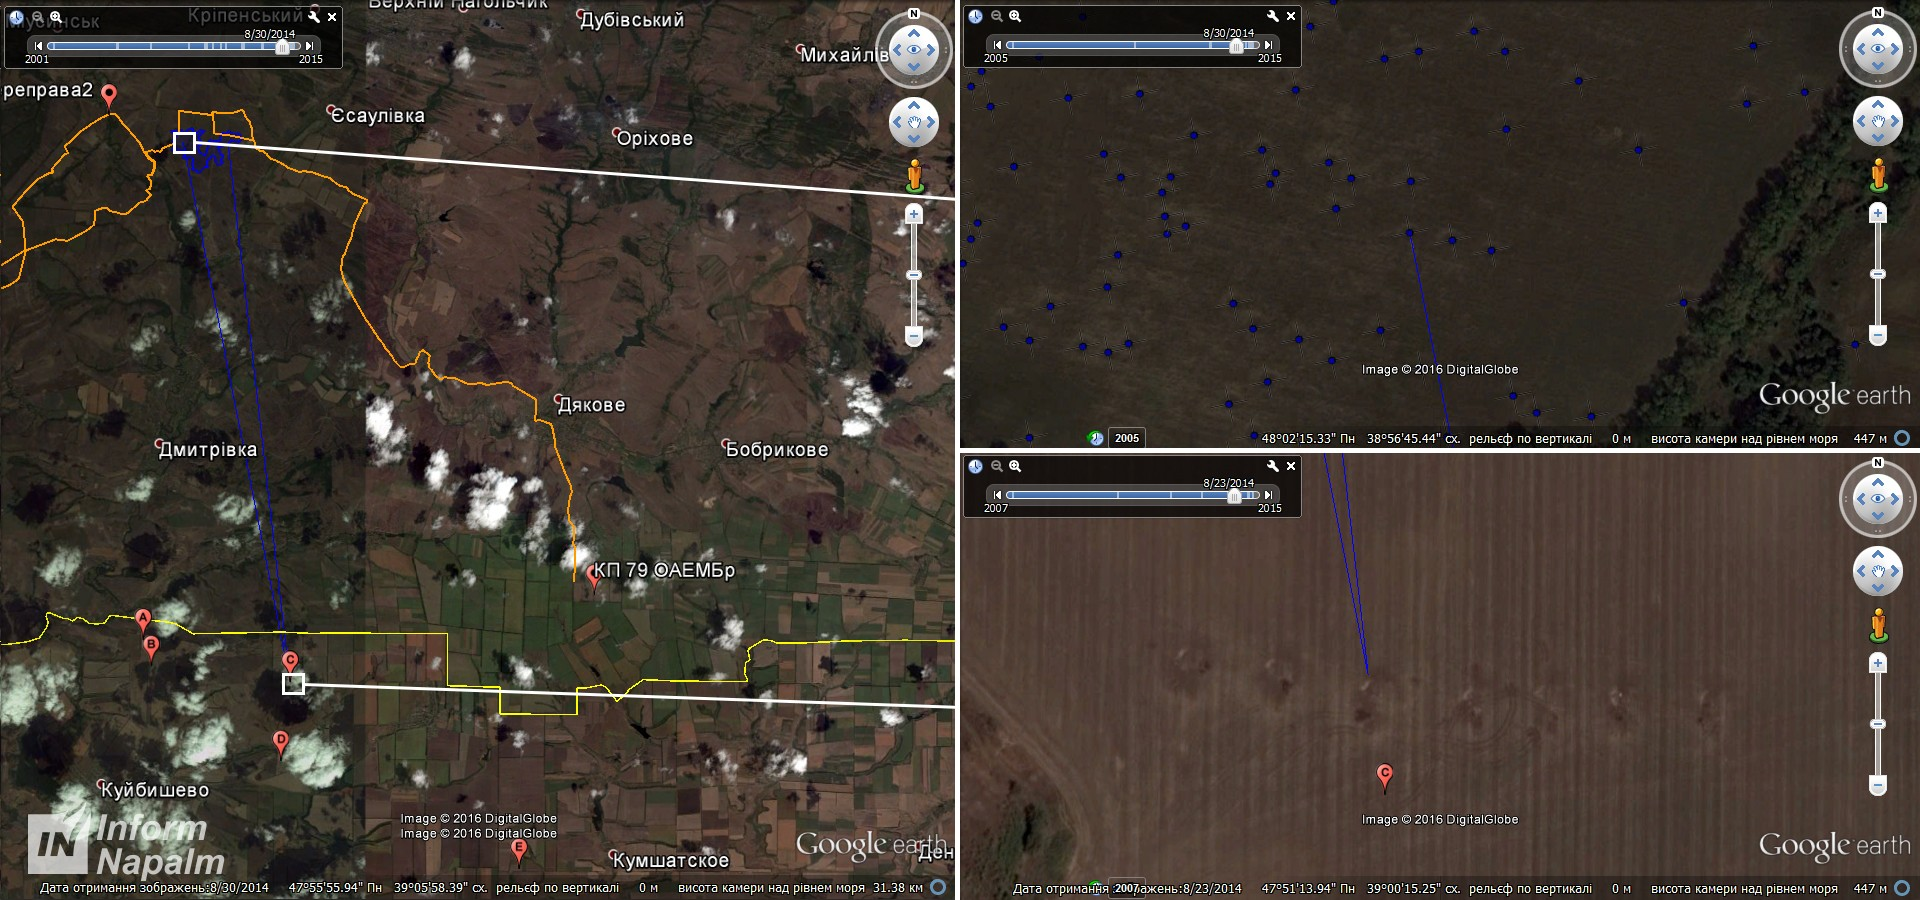 Russia Shelled Ukraine in August 2014  Satellite Images of 539